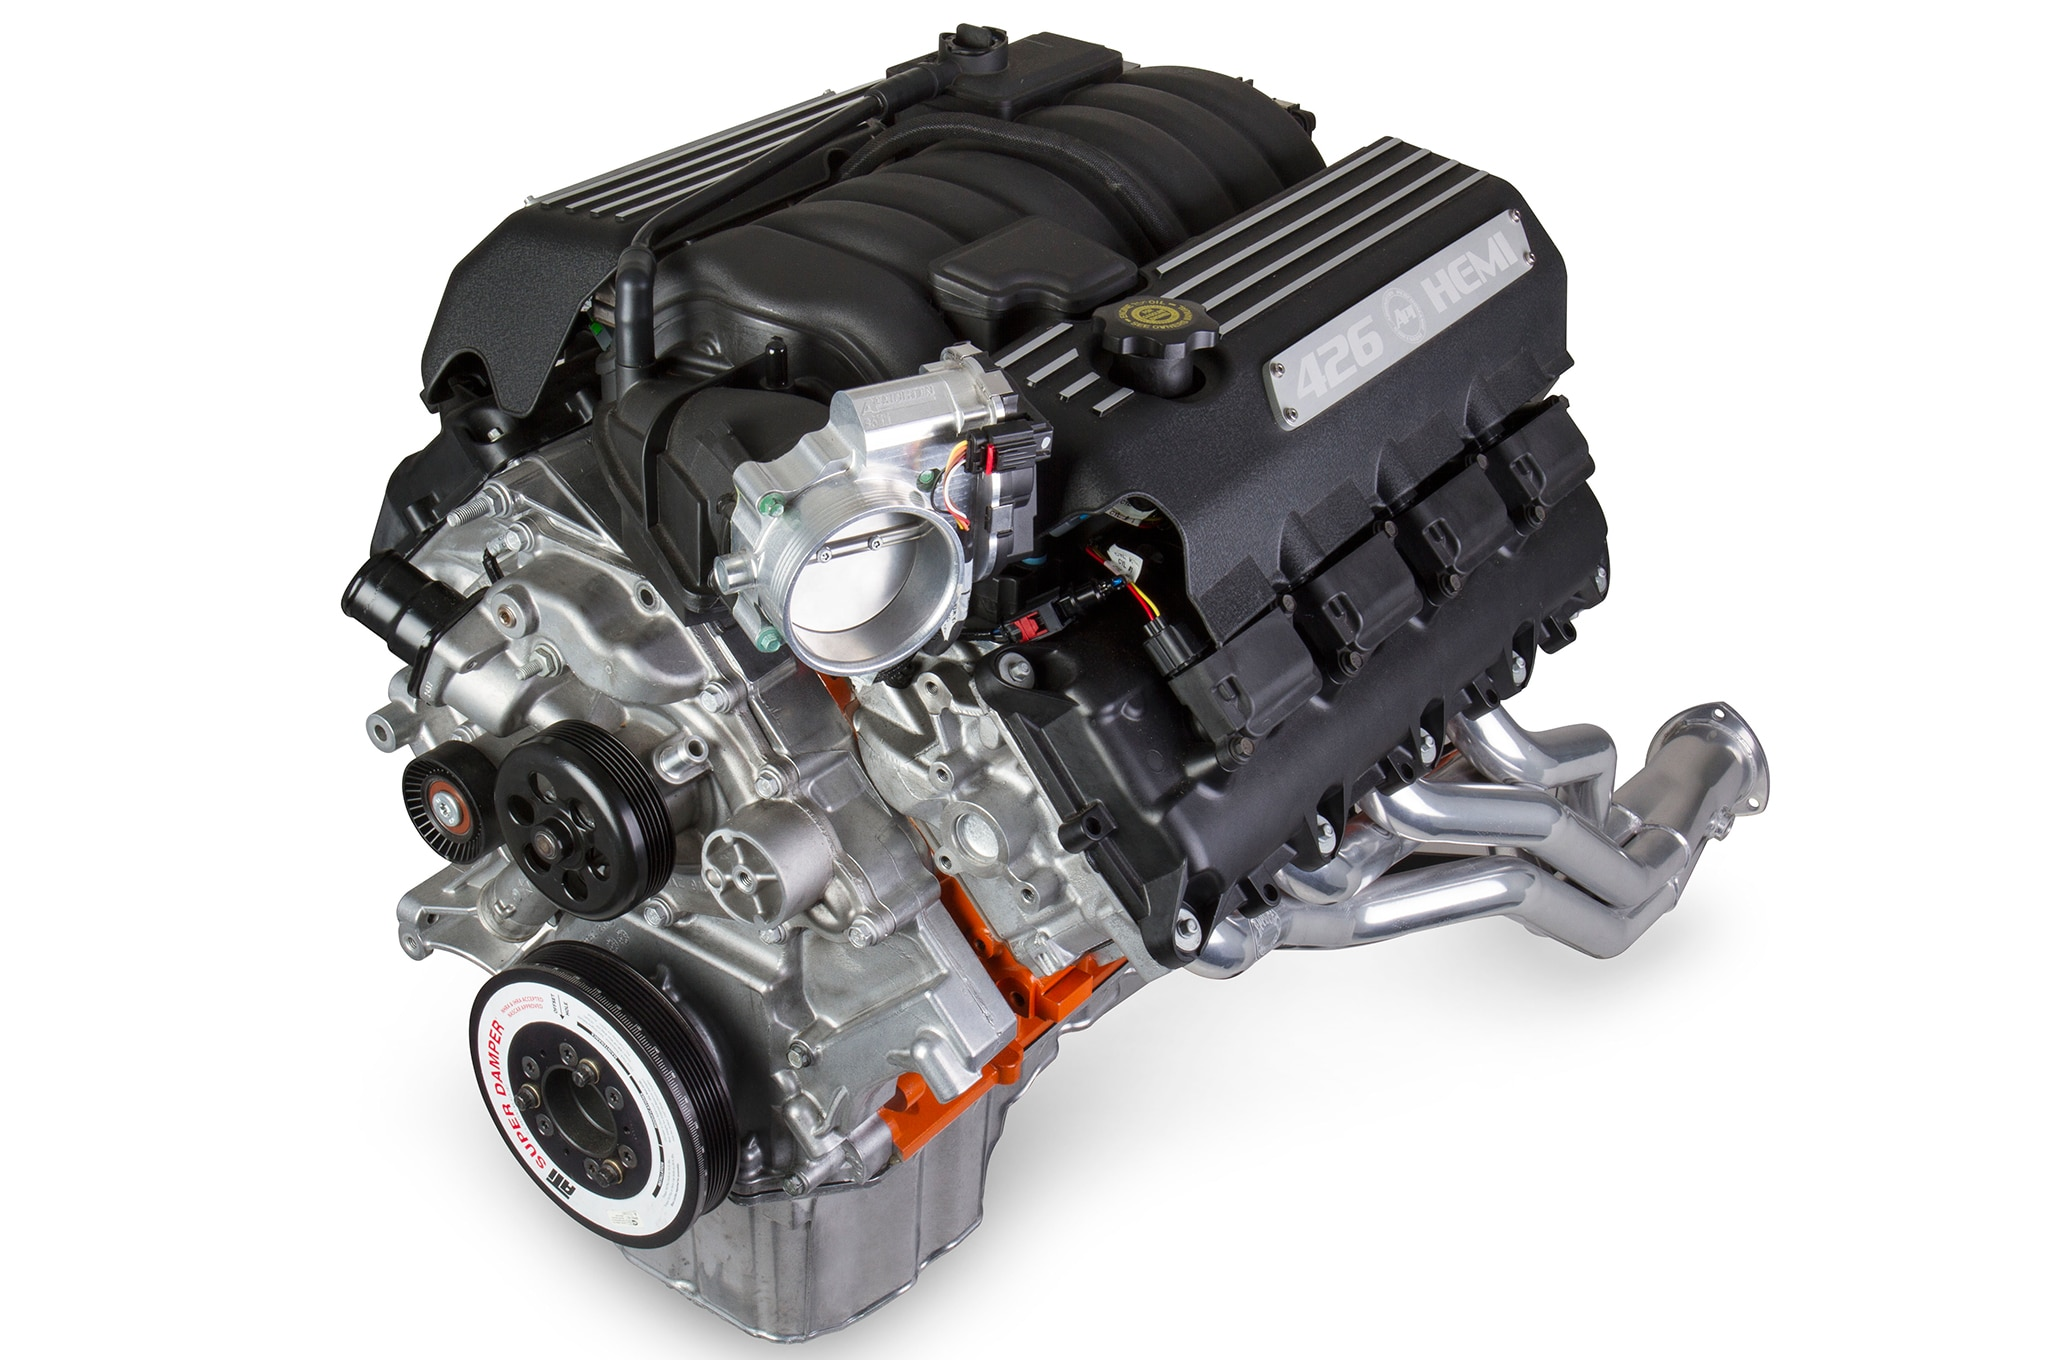 hight resolution of hemi engine swaps made simple with new holley efi harness hot rodhemi engine swaps made